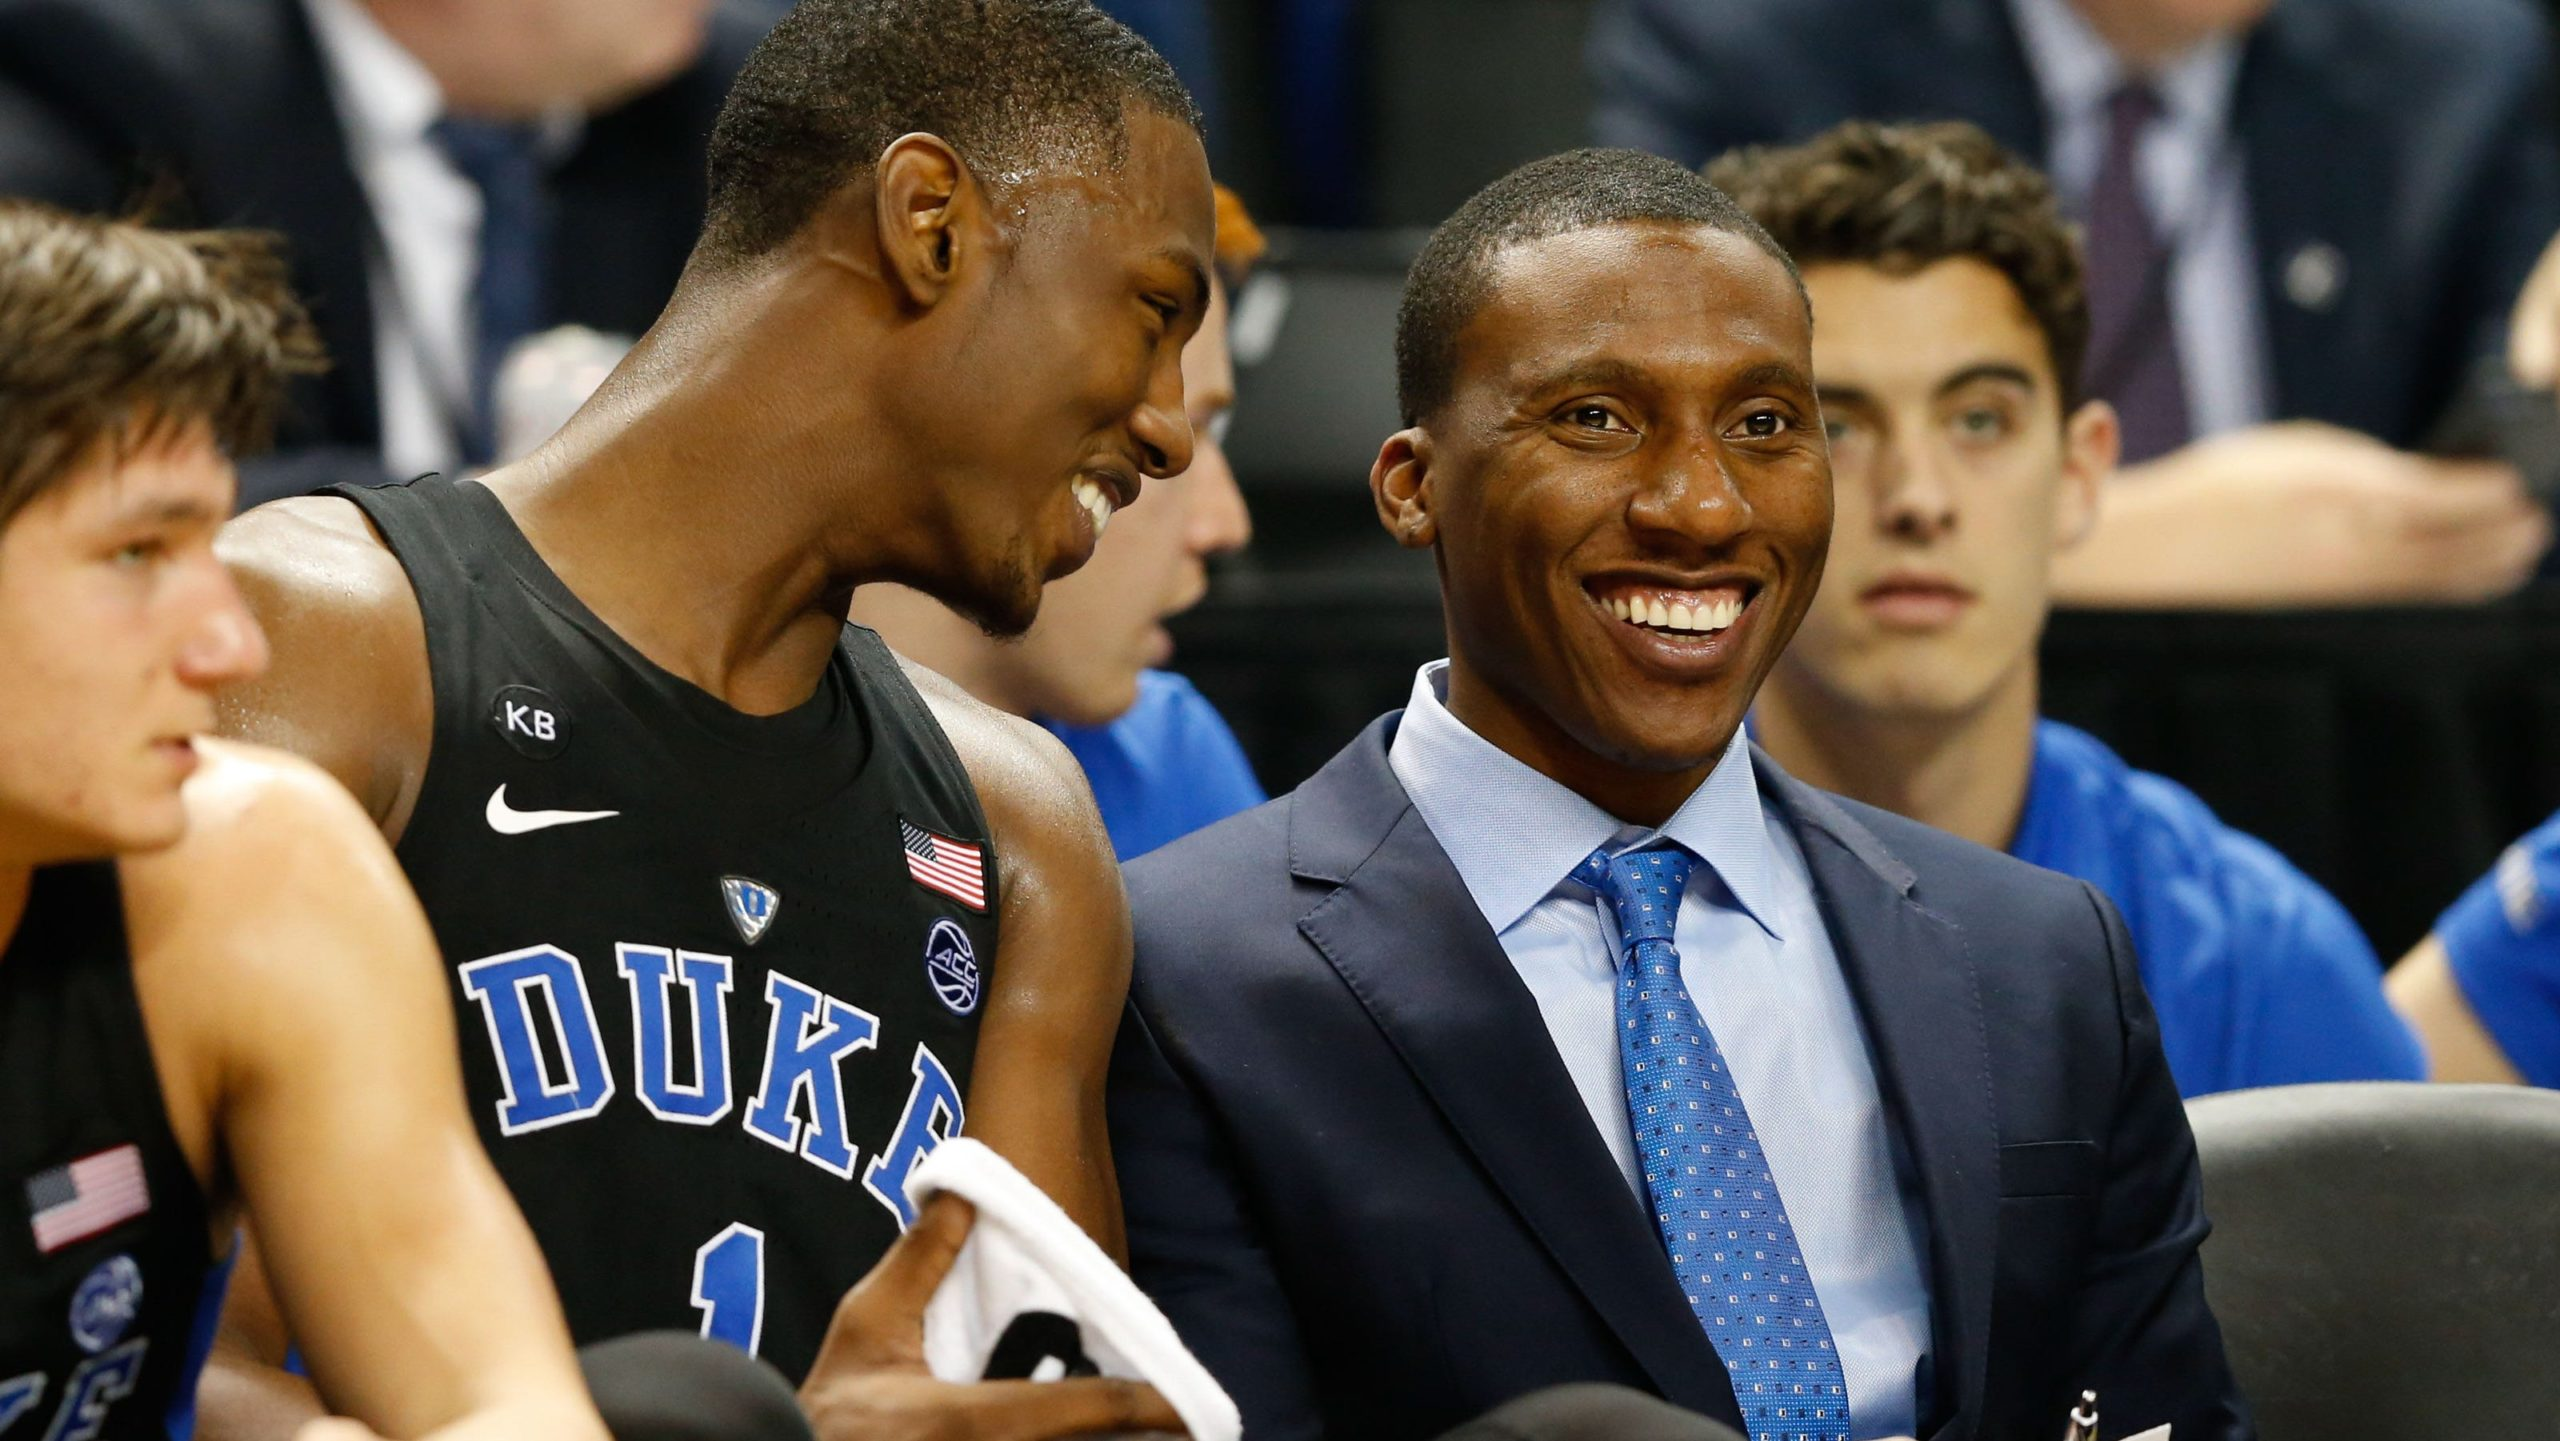 Congrats to the Peoples Champ Nolan Smith on Being Promoted to Assistant Coach